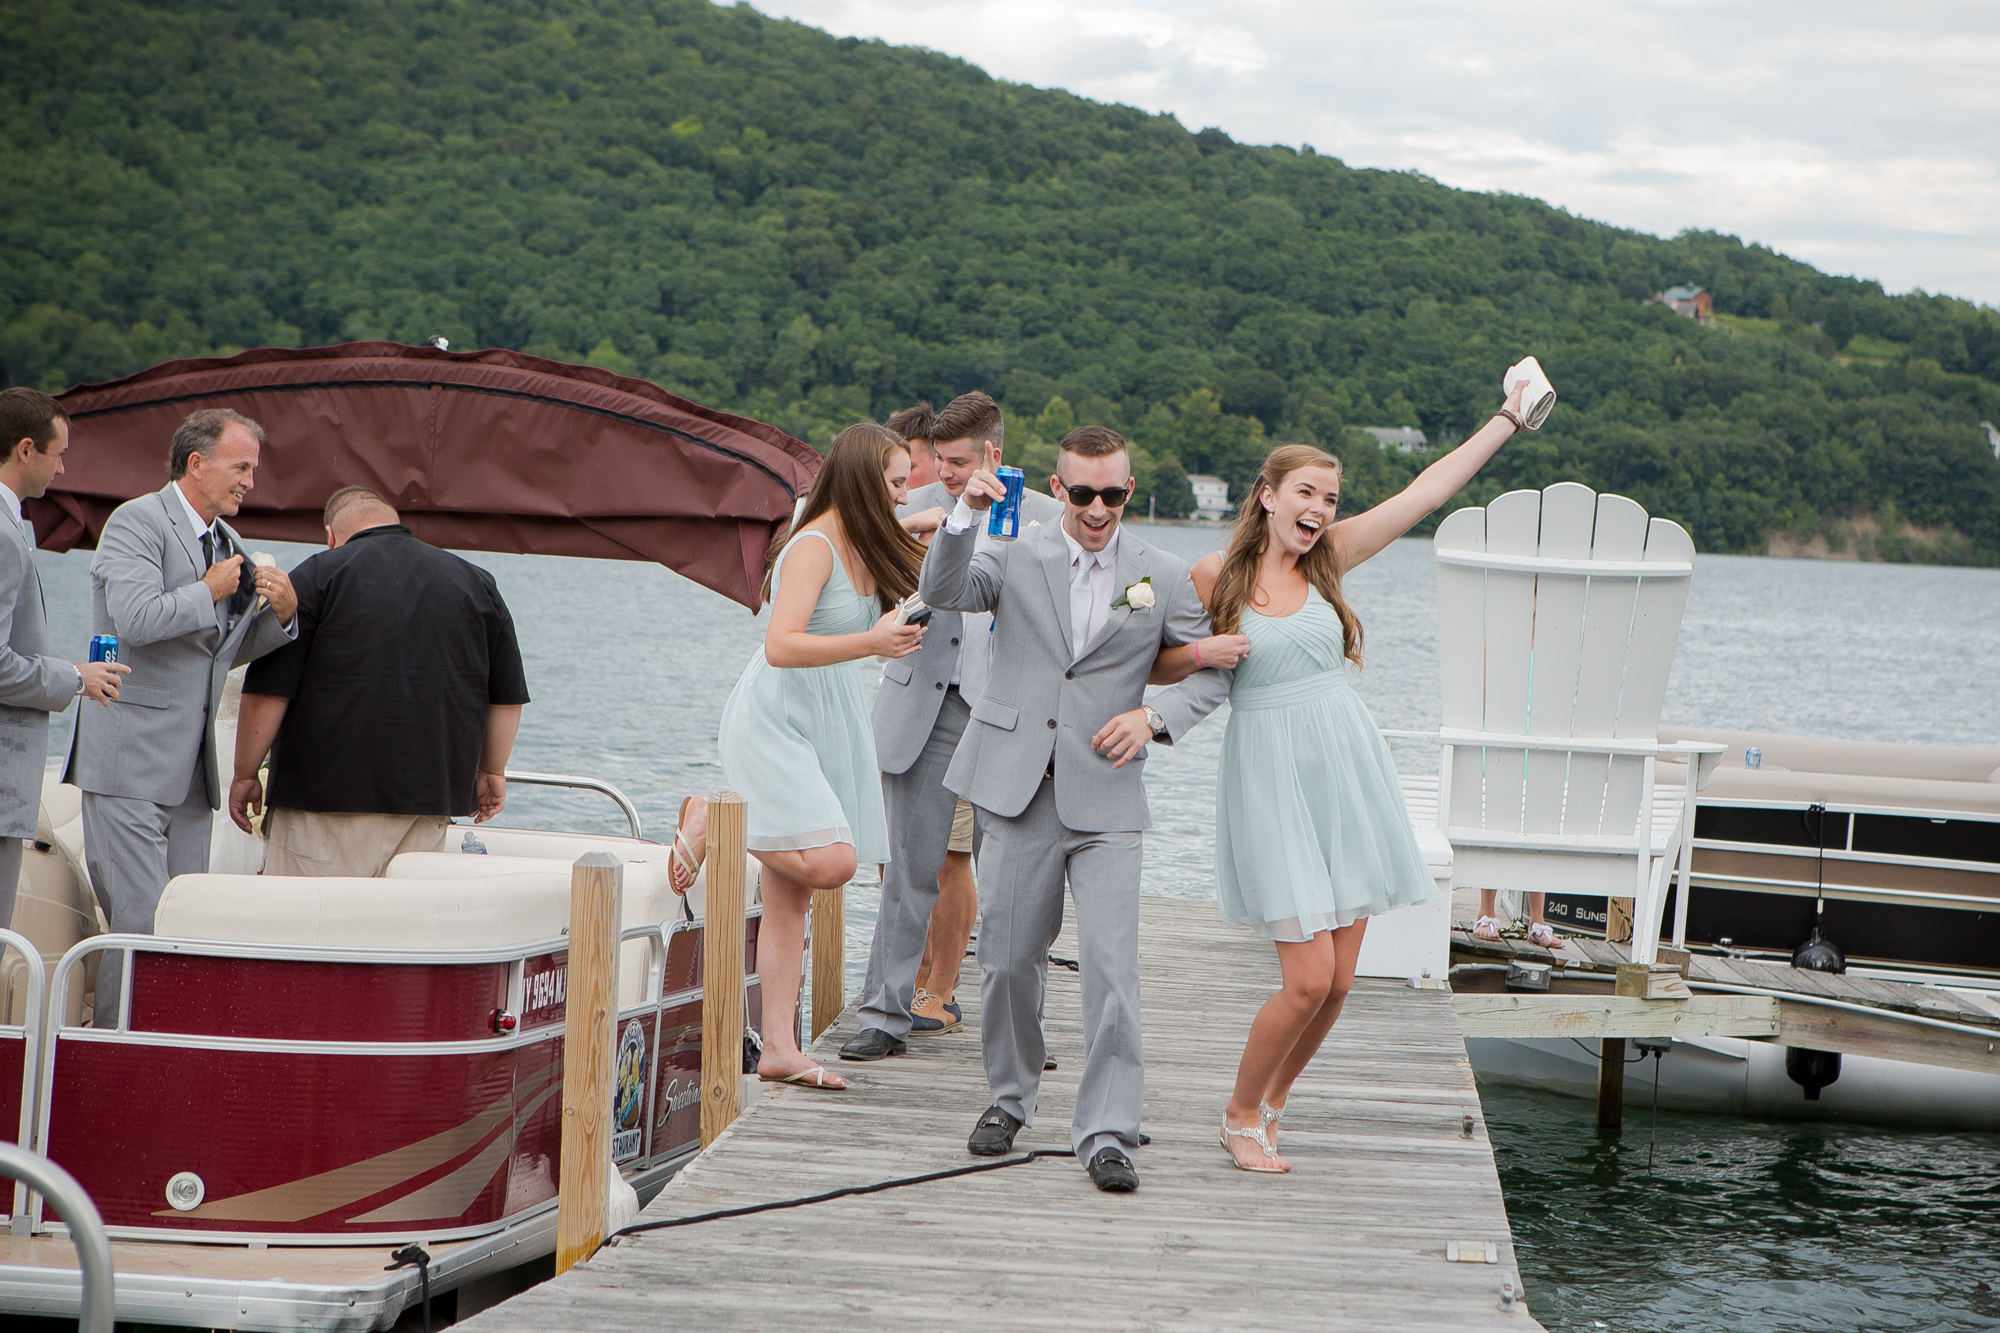 Keuka-lake-wedding-Lakeside-restaurant-&-Inn-19.jpg